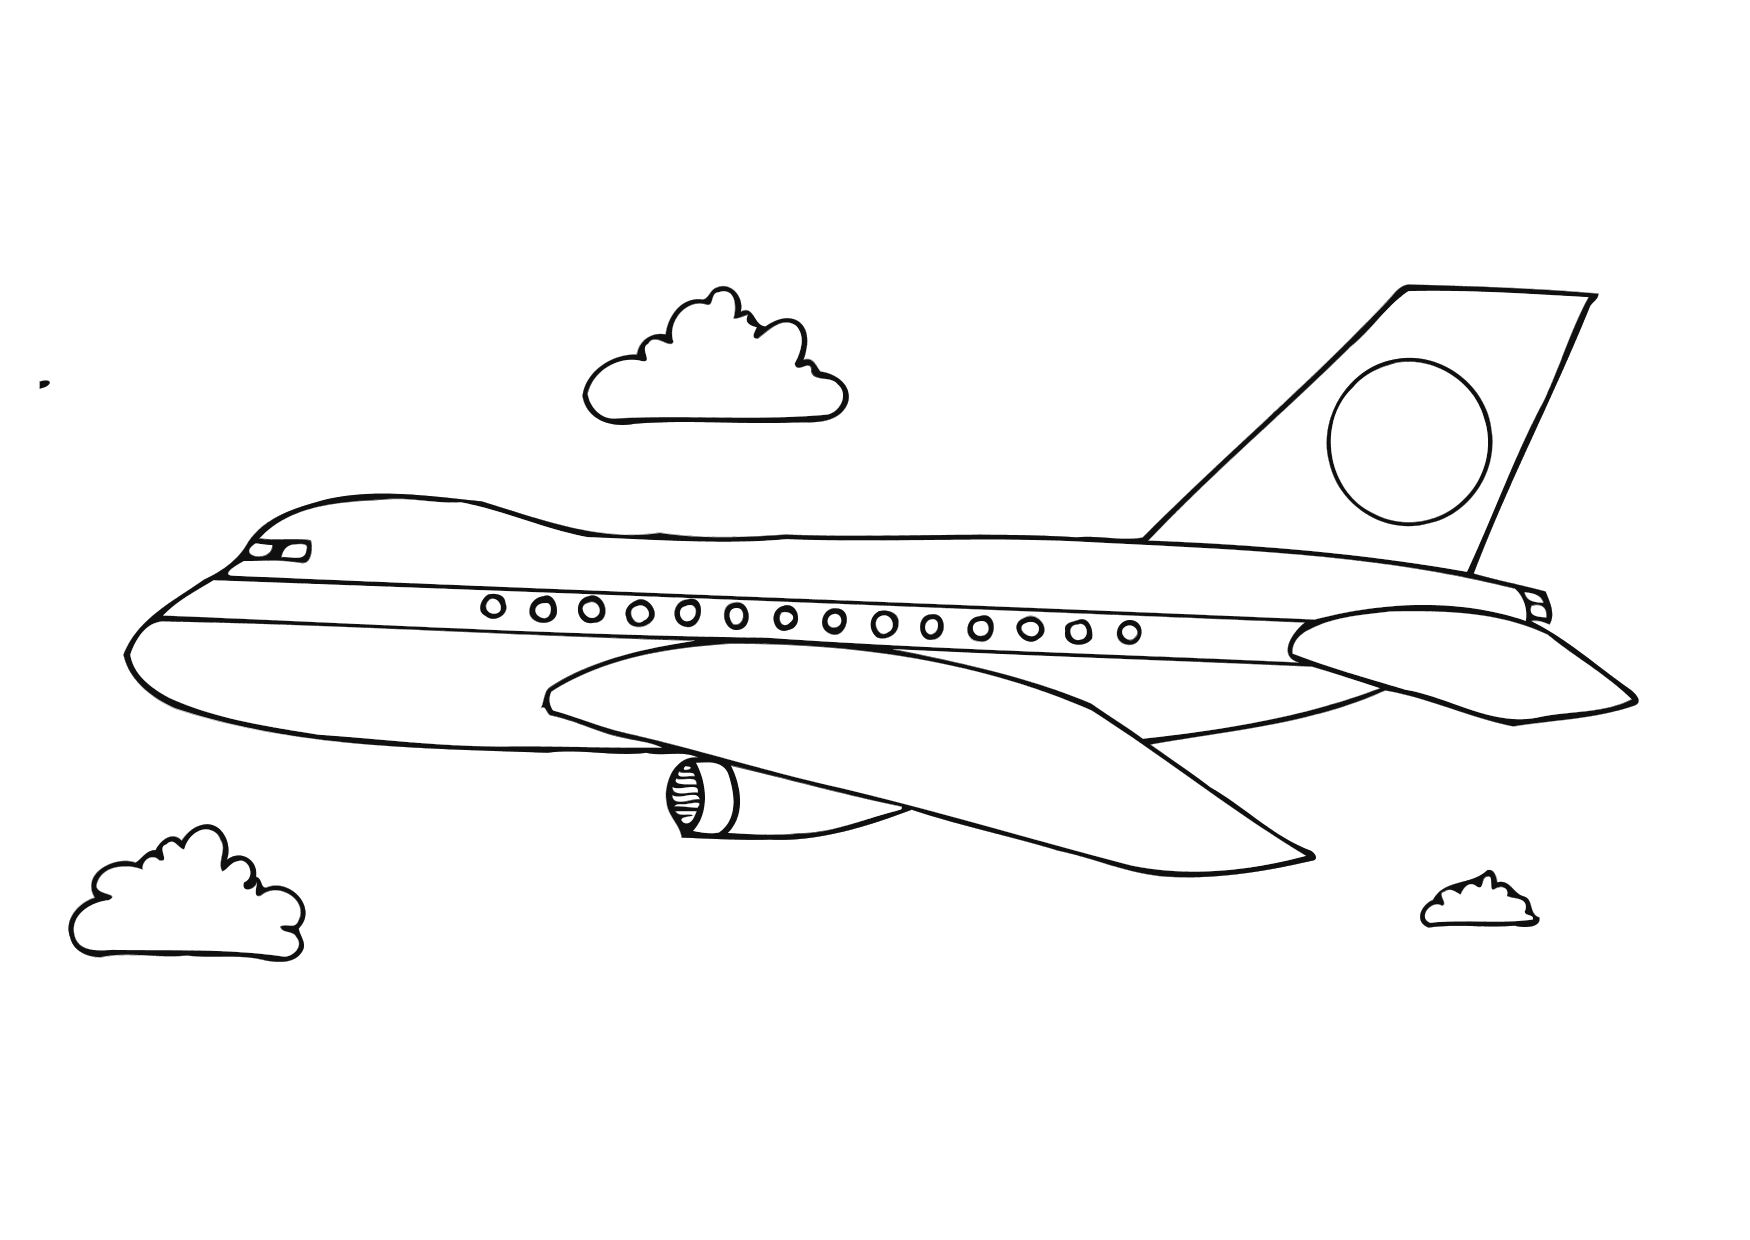 old planes coloring pages - photo#32